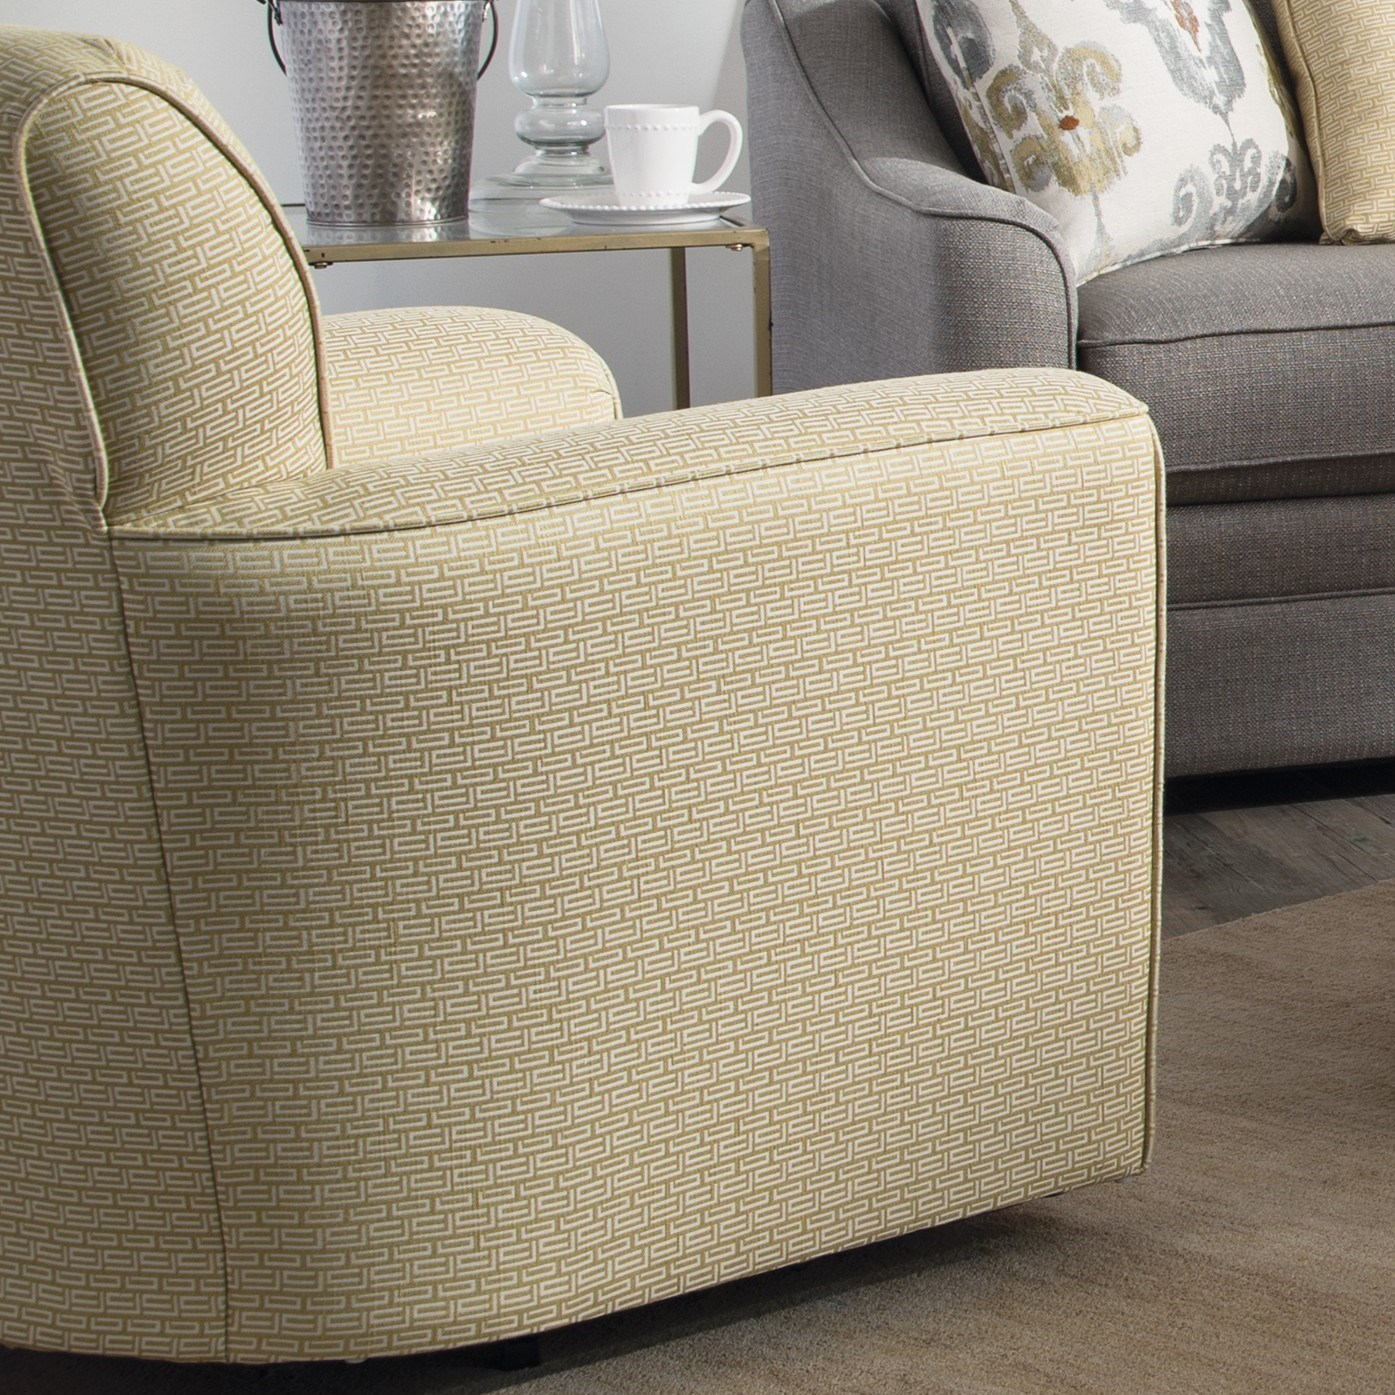 Upholstered Accent Chairs With Arms Contemporary Upholstered Swivel Chair With Flared Arms And